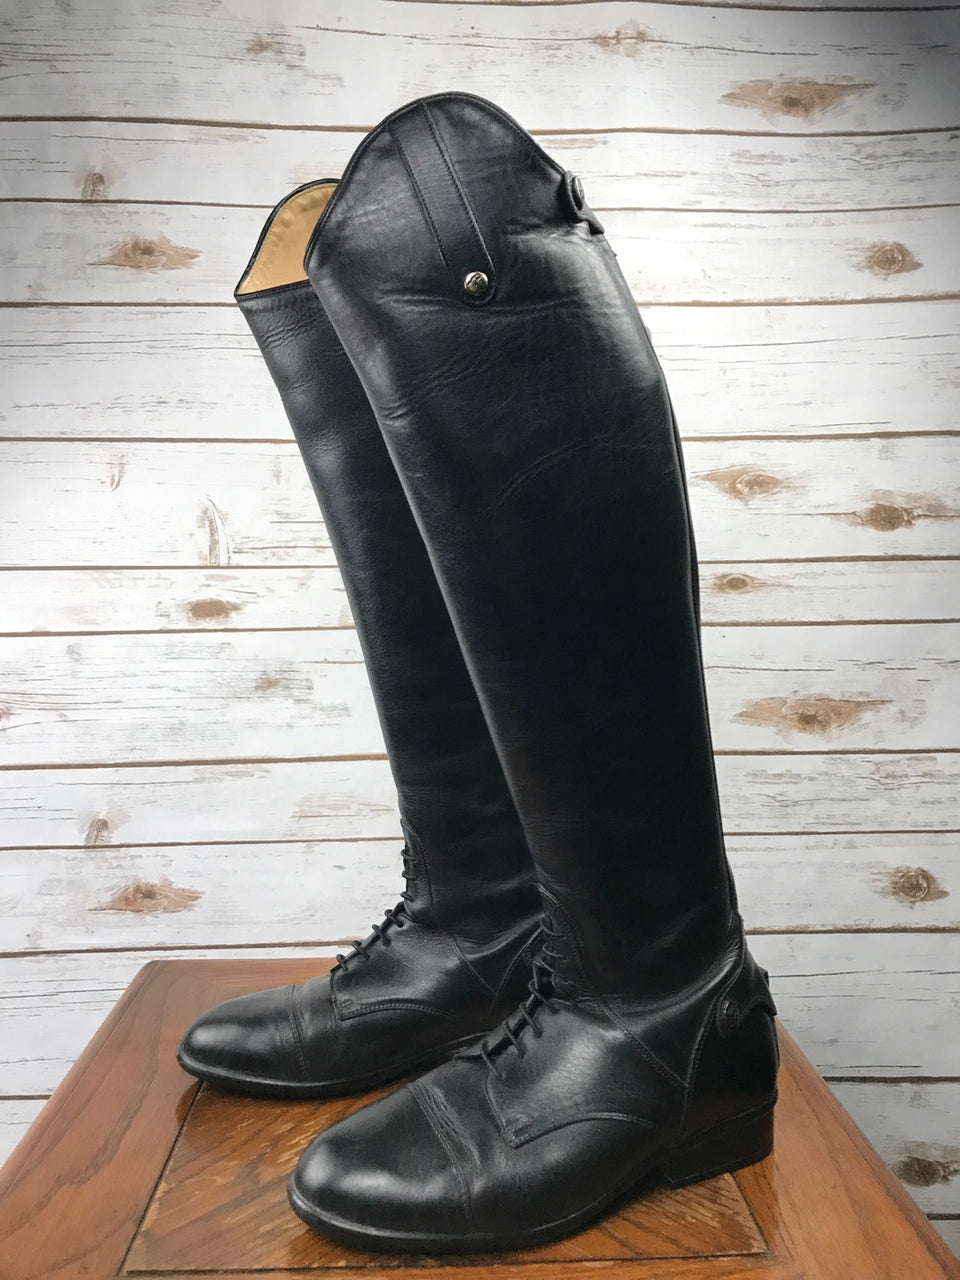 Sergio Grasso Field Boots in Black - Women's EUR 38 H